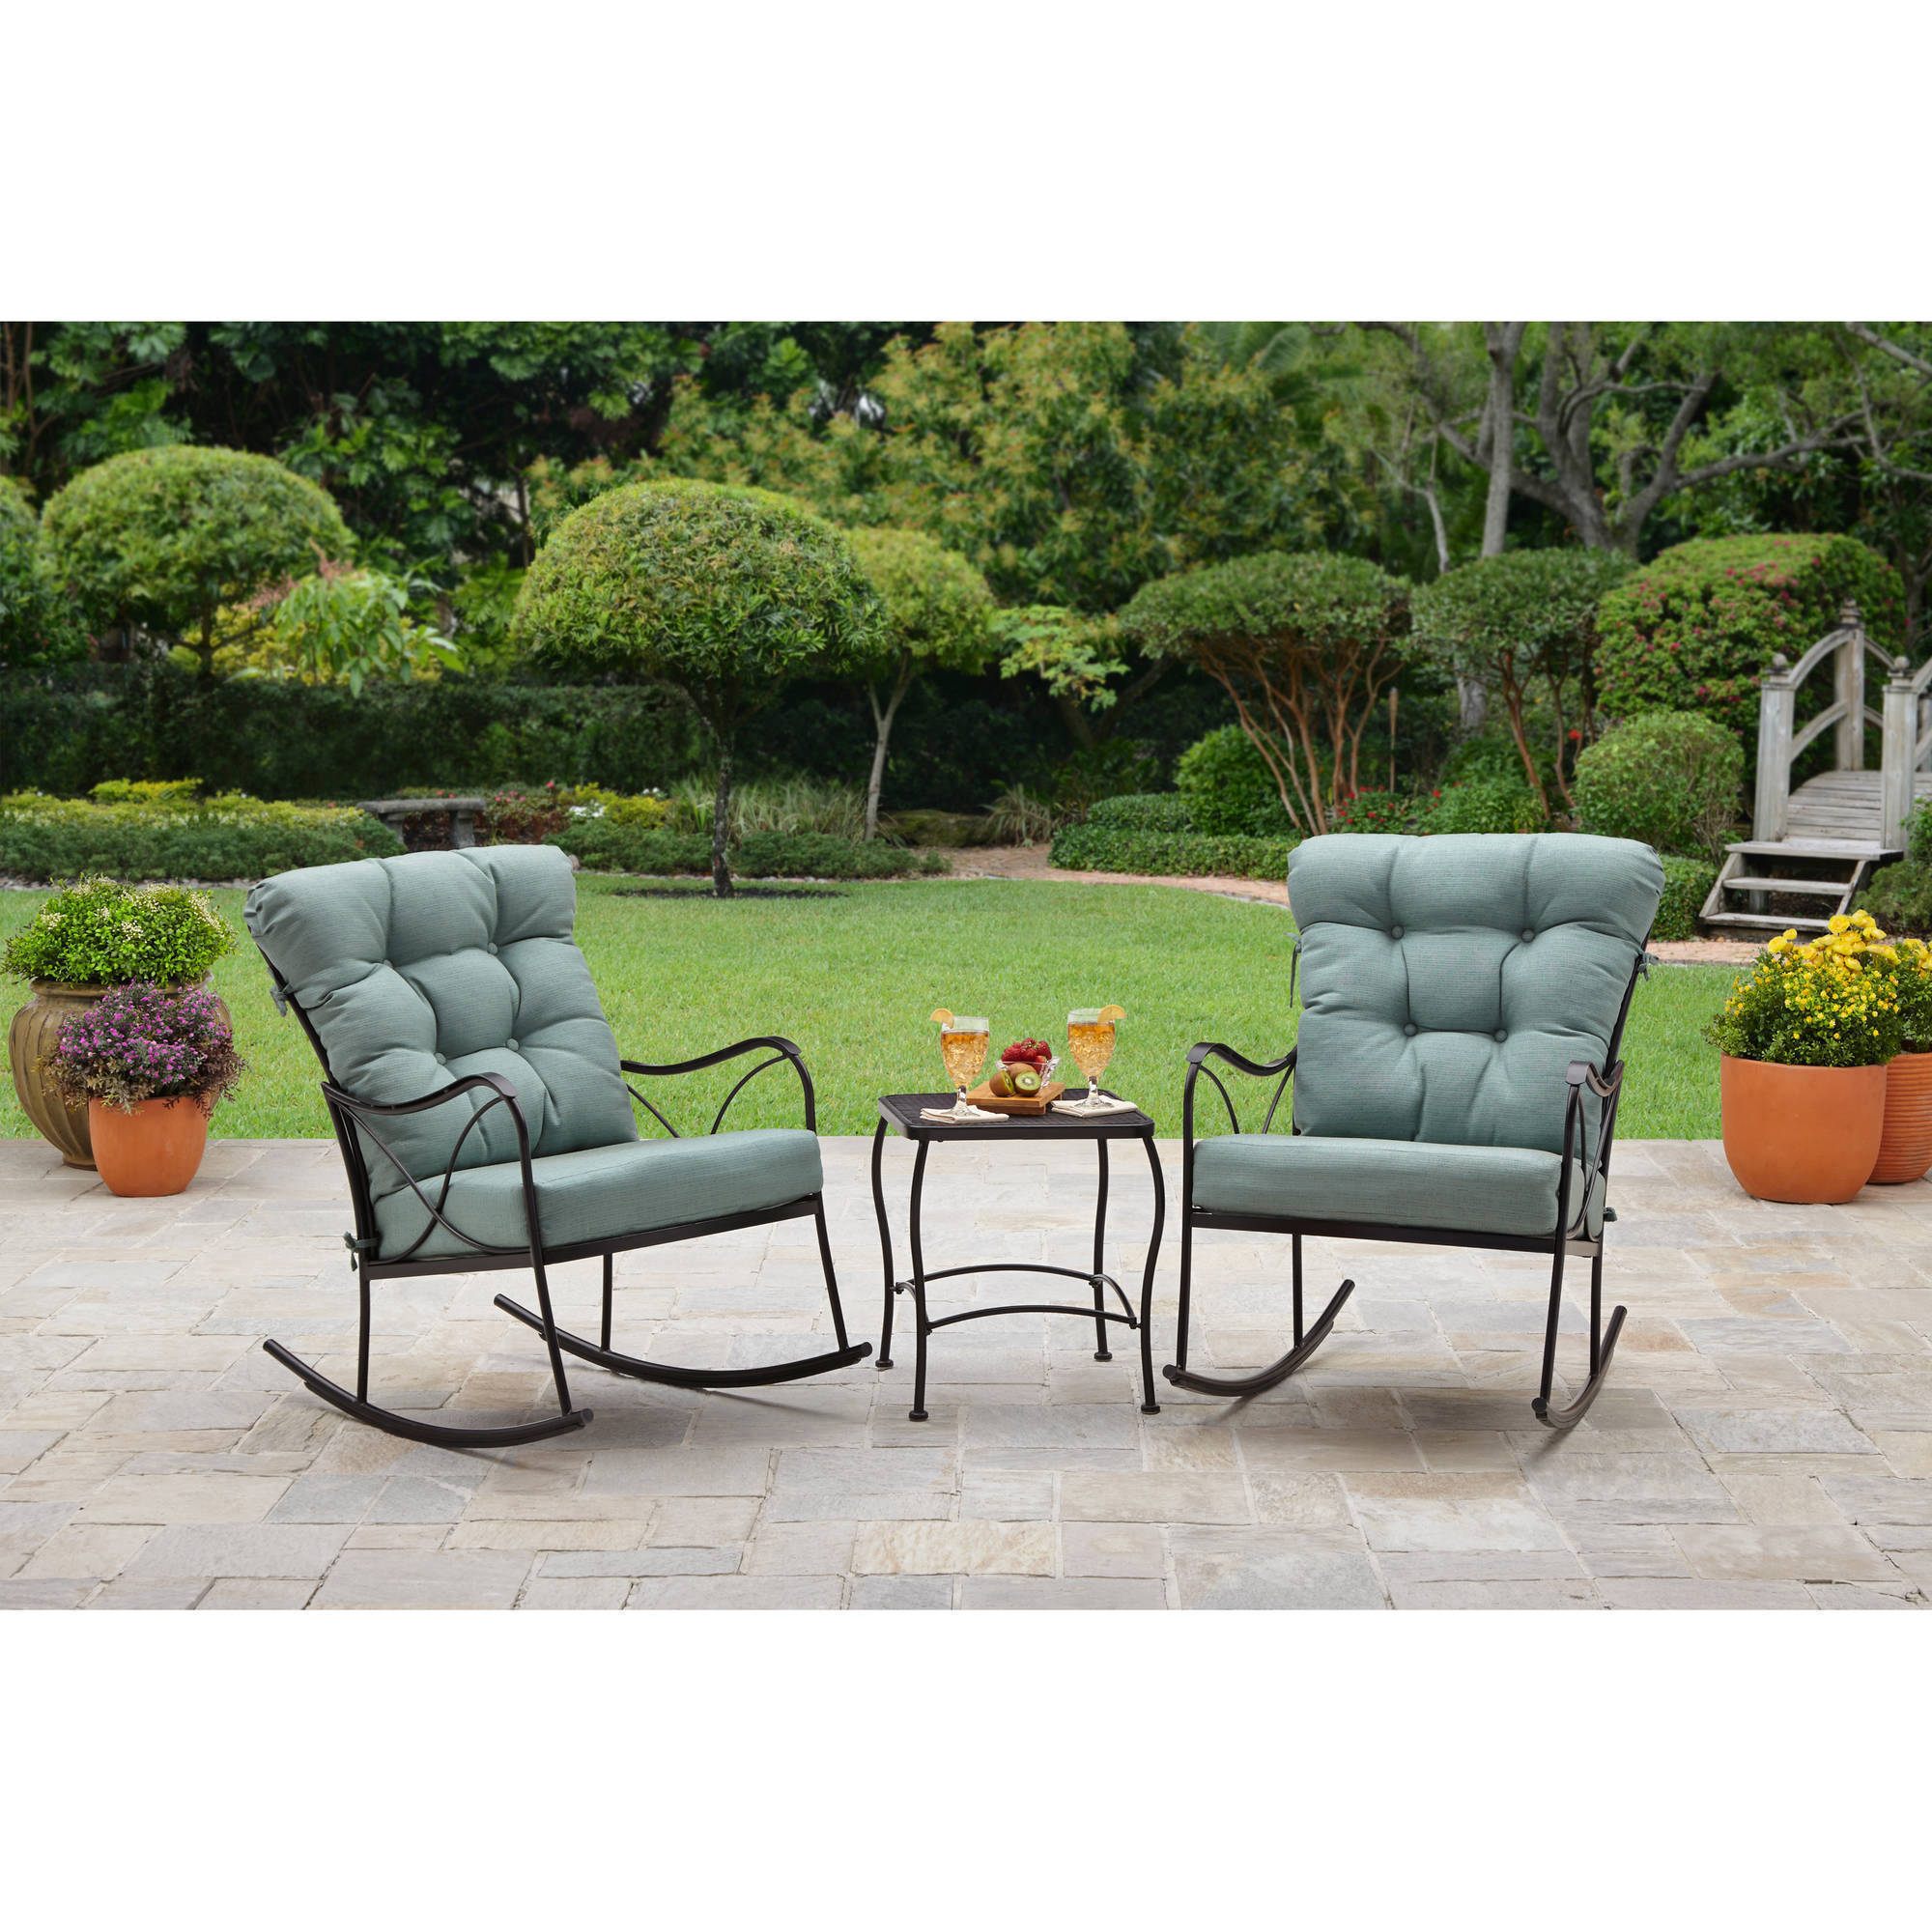 Metal Bistro Table And Chairs Better Homes And Gardens Seacliff 3 Piece Rocking Chair Bistro Set